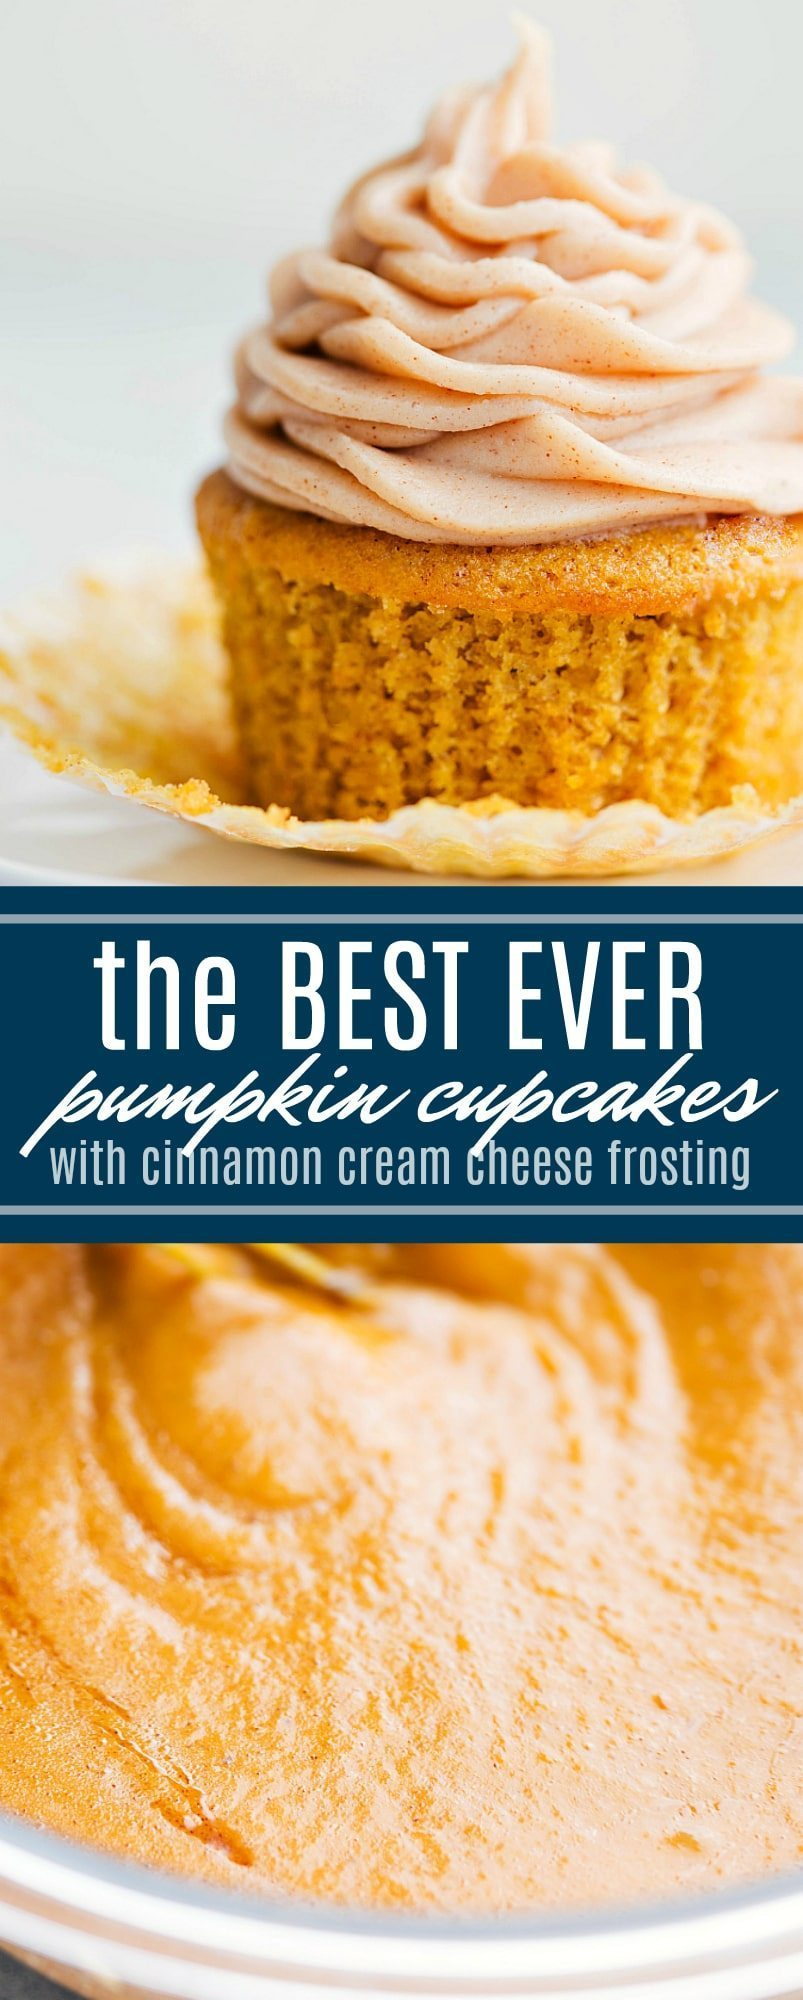 The ultimate BEST EVER pumpkin cupcakes with a cinnamon cream cheese frosting. Everyone goes crazy for these cupcakes! via chelseasmessyapron.com